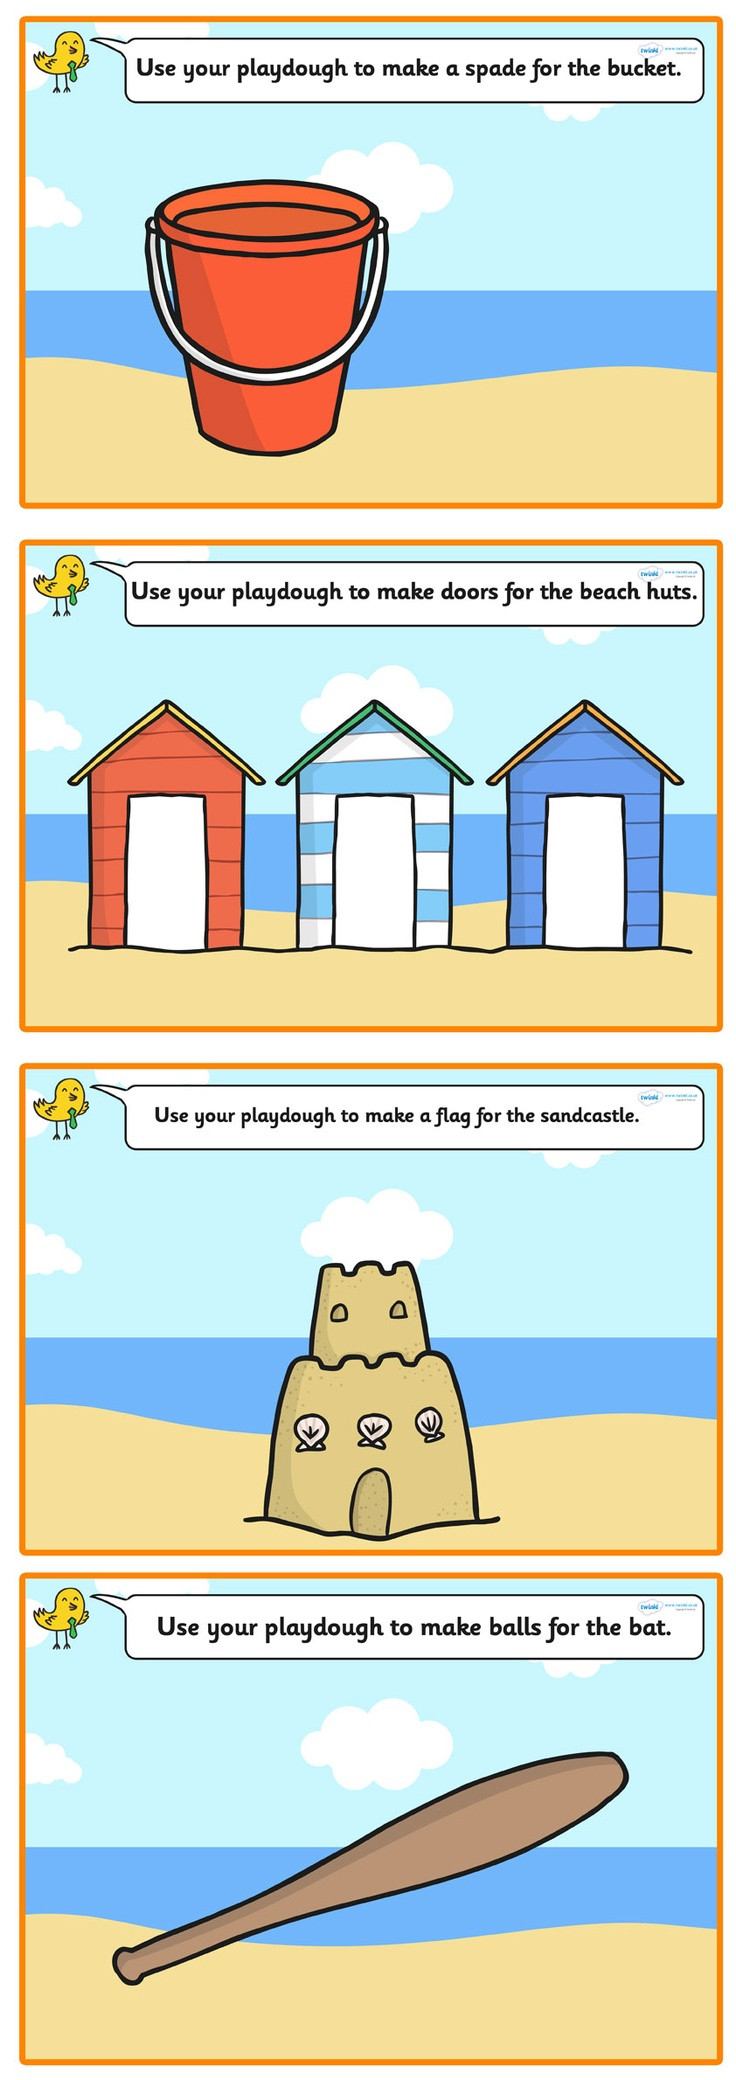 Seaside Playdough Mats  - Pop over to our site at www.twinkl.co.uk and check out our lovely Seaside primary teaching resources! seaside, display, playdough mats #Seaside #Seaside_Resources